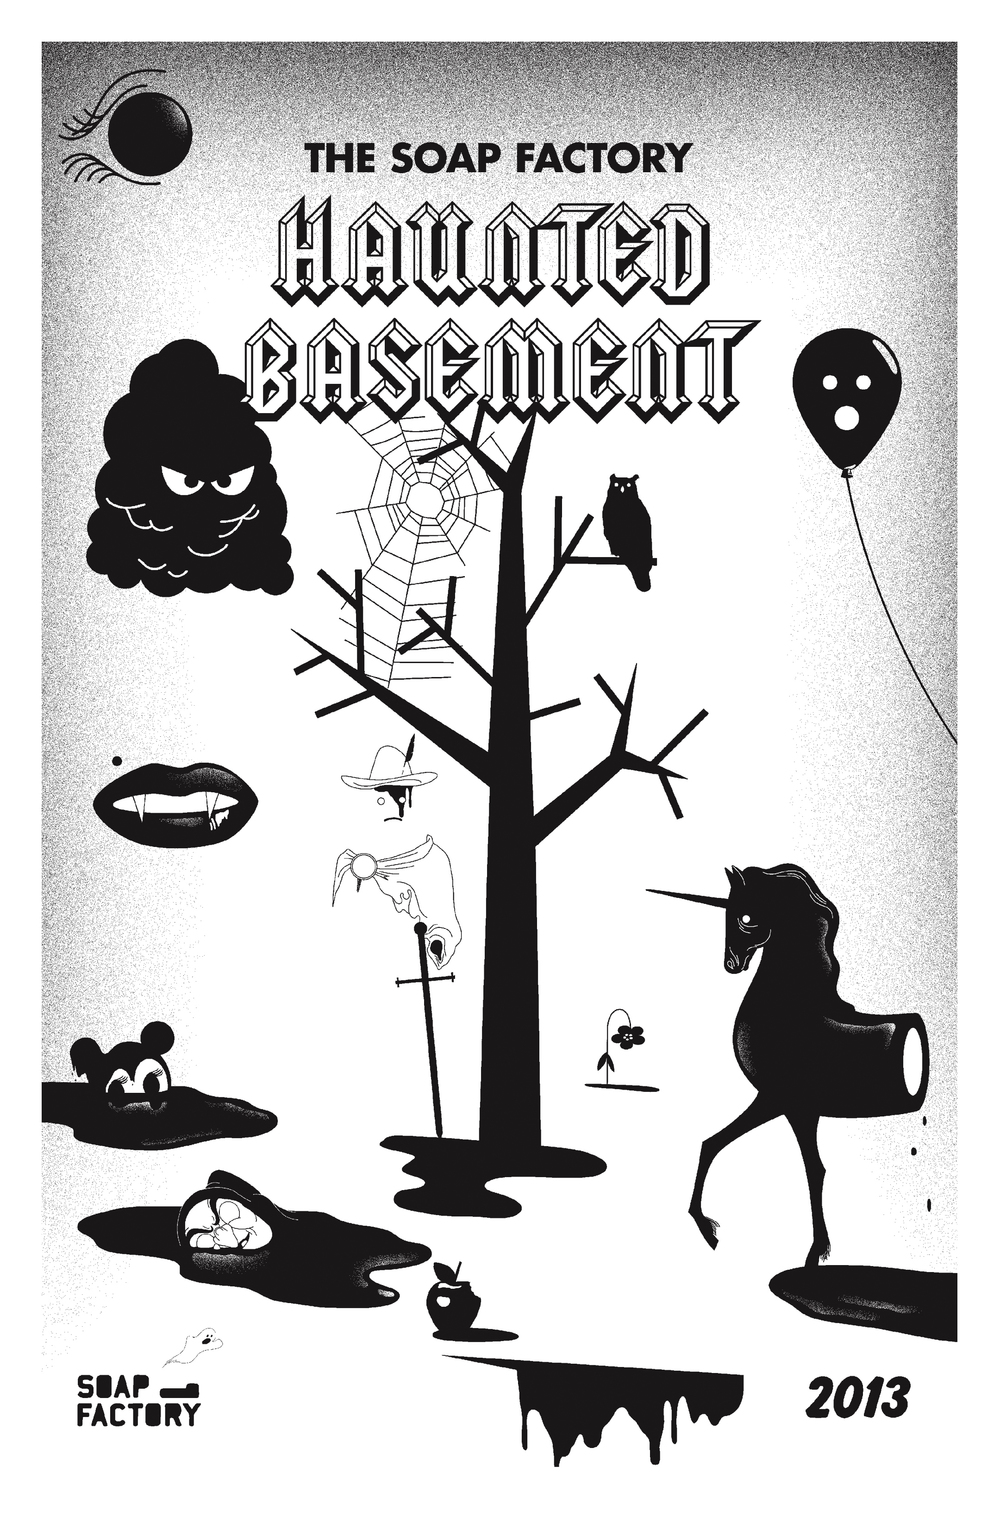 Haunted Basement newspaper (The Soap Factory, 2013)   We produced an 8-page newspaper as a take-away from the Spooky Speakeasy, a pop-up lounge at the Haunted Basement. The content was largely about the event's history so we created a different design with surrealist inspiration rather than use the 2013 poster style.  Creative Direction: Namdev Hardisty  Design and illustration:  John Vogt